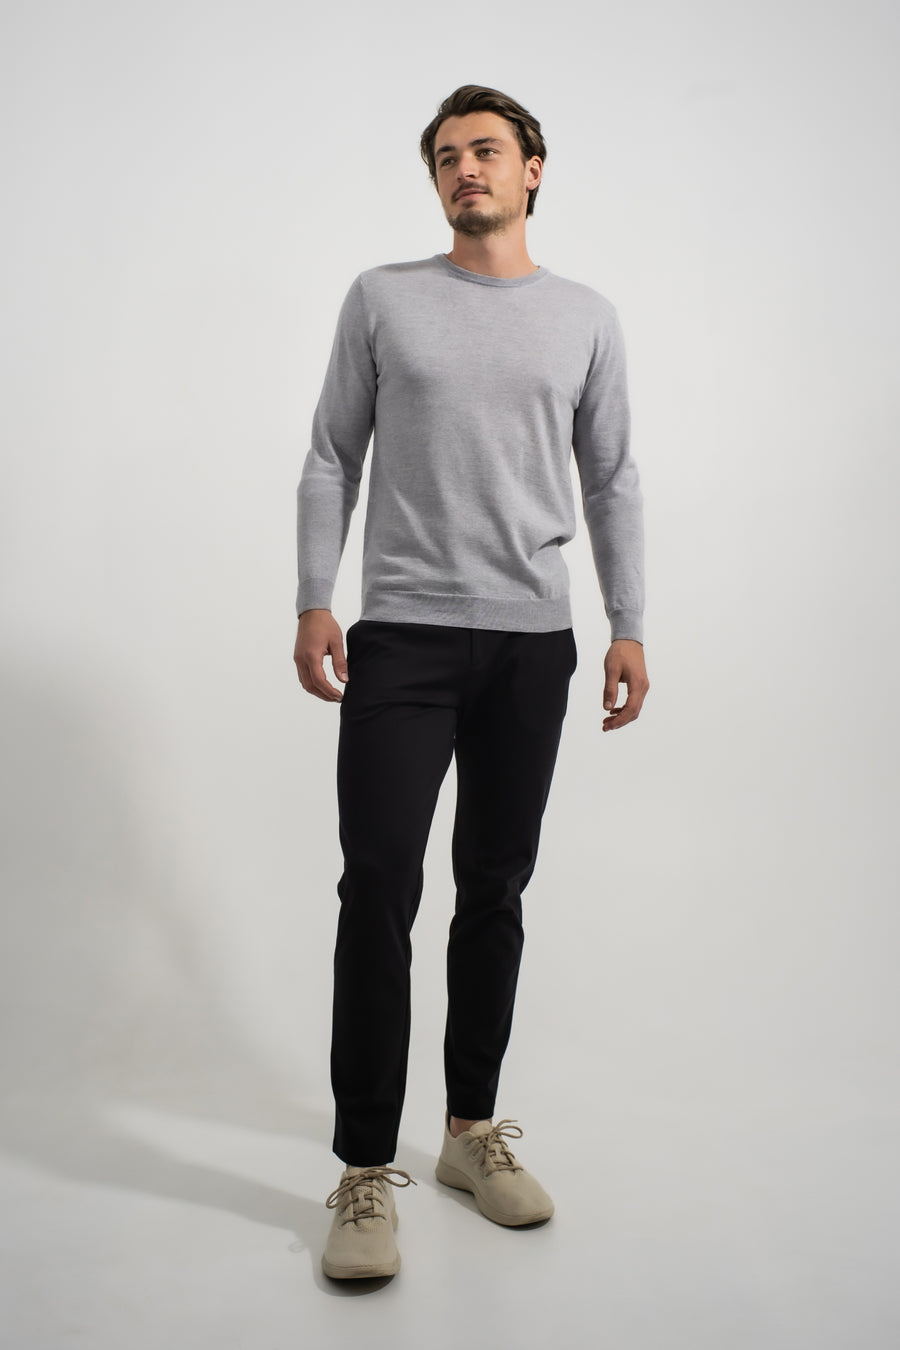 Merino Sweater v2.0